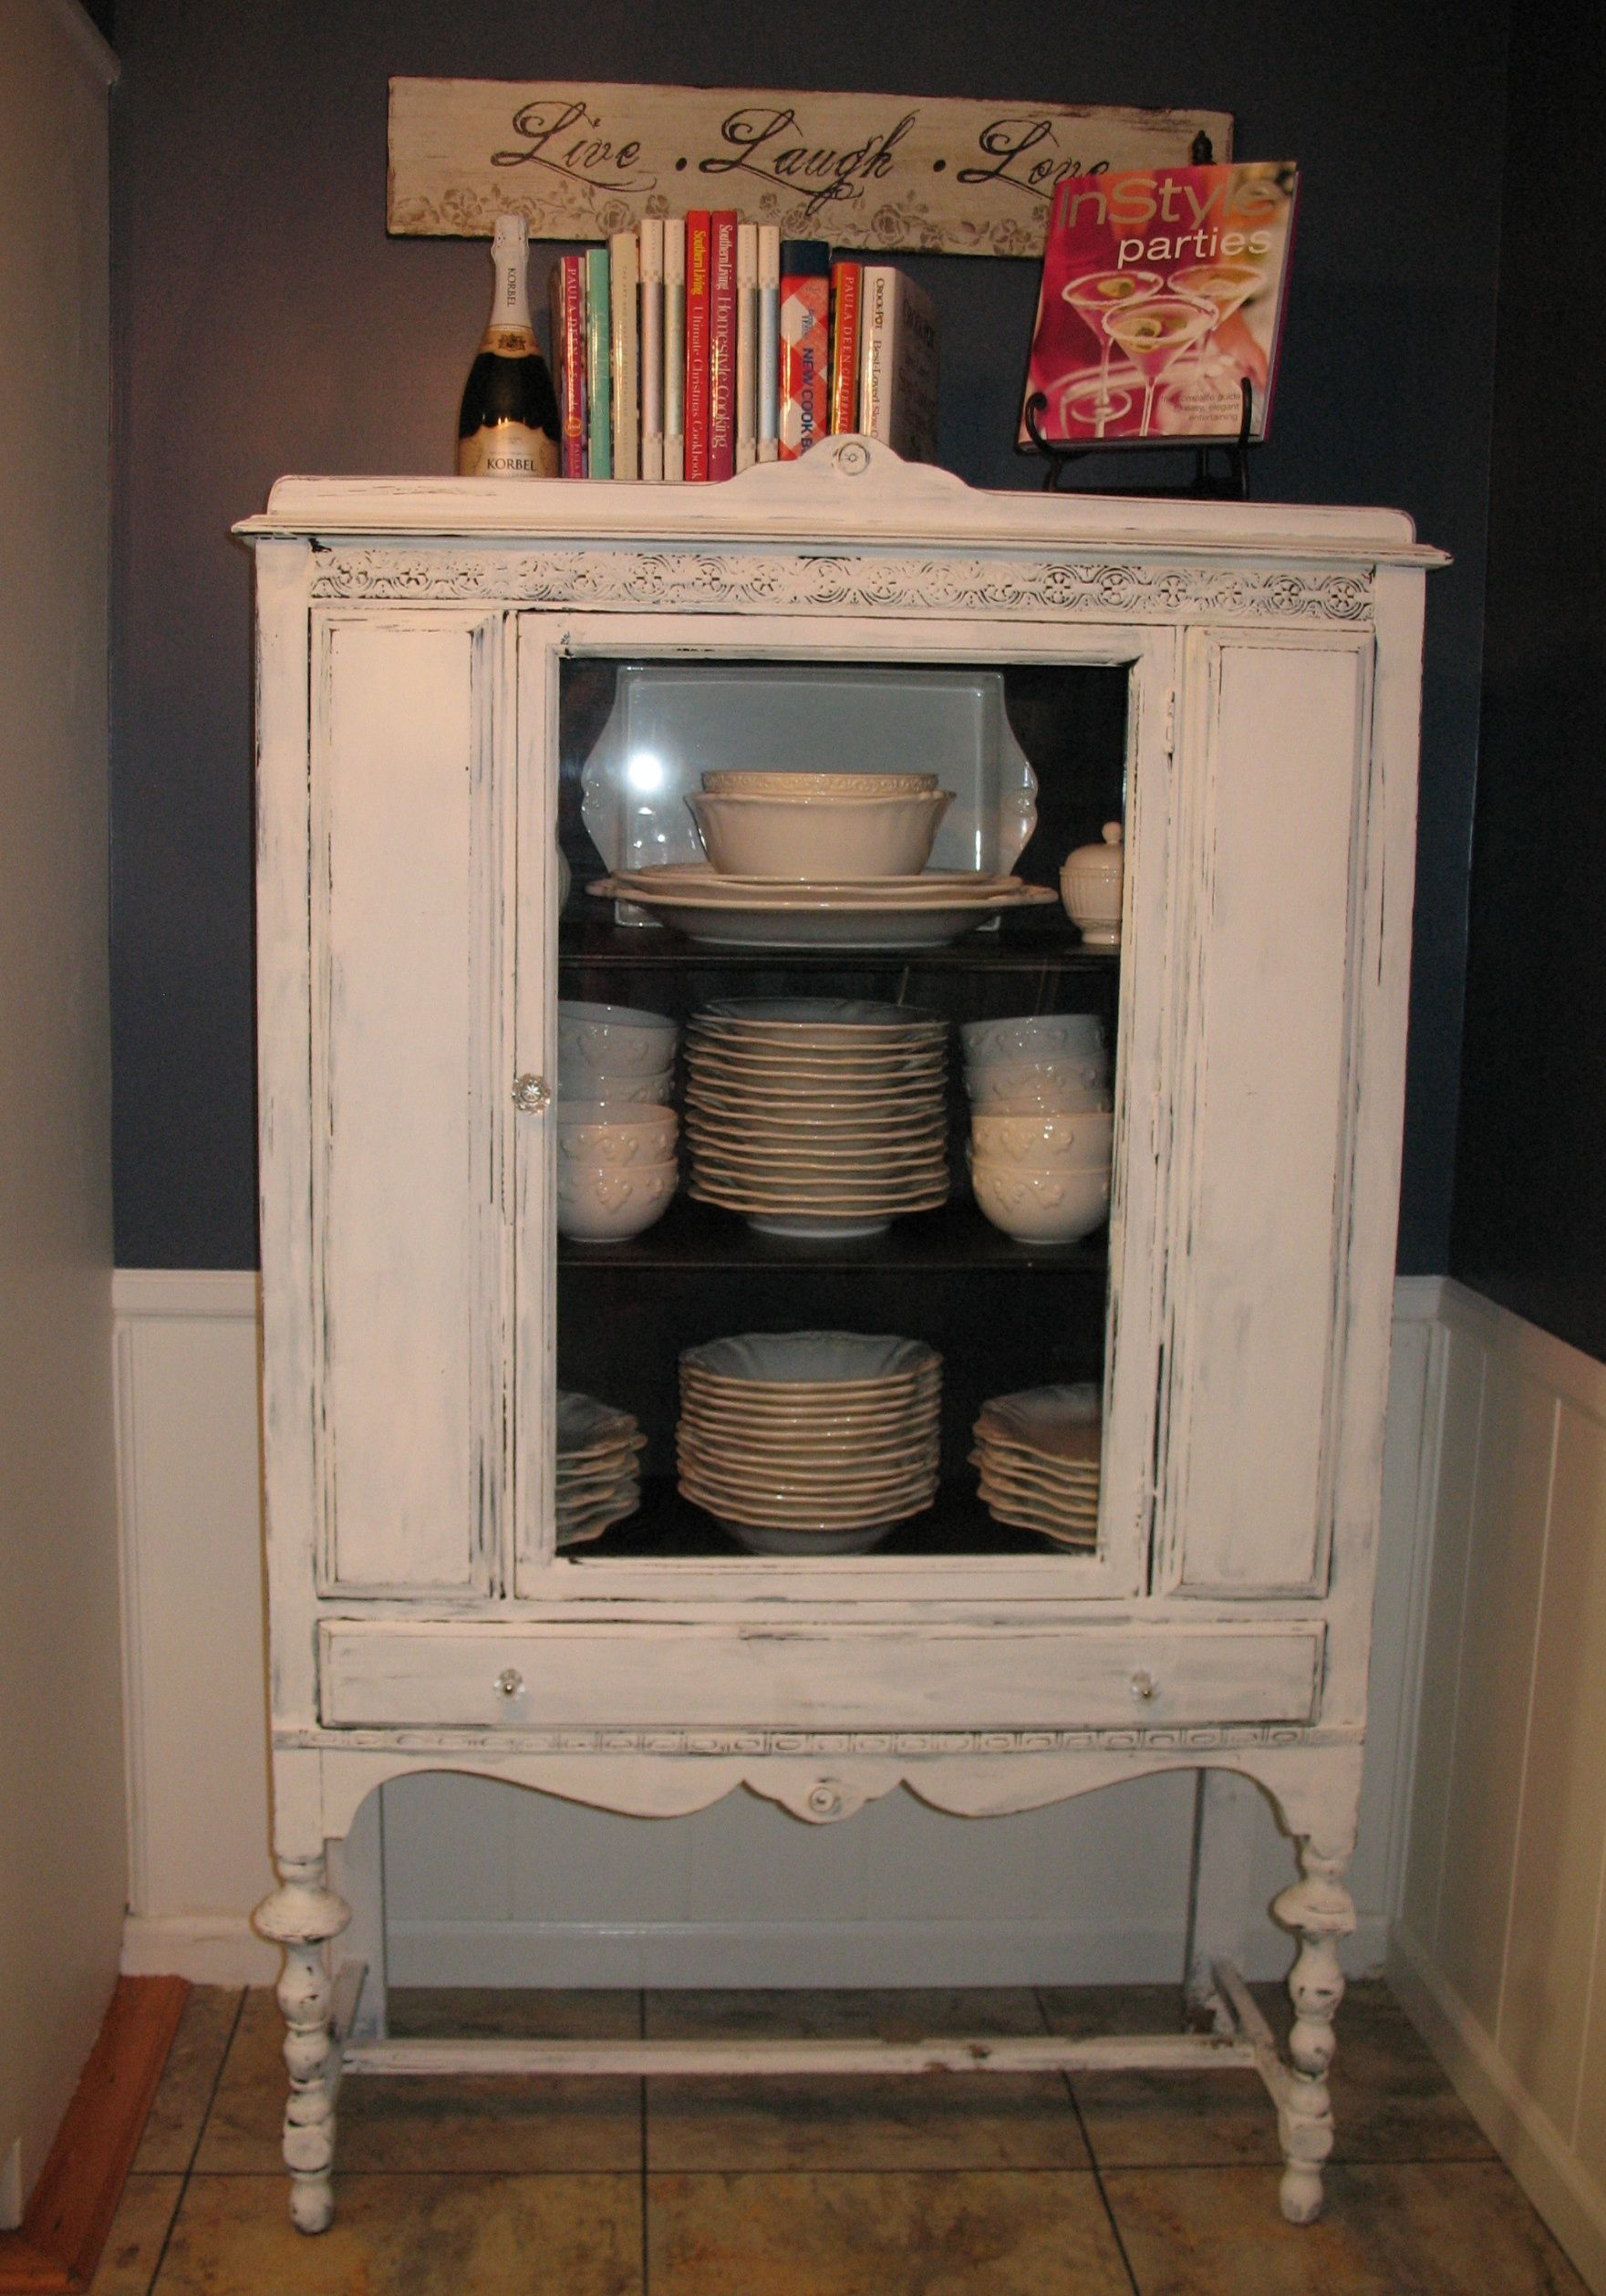 Shabby Chic China Cabinet I Love Antique Looking Things Shabby Chic Dresser Shabby Chic Bathroom Shabby Chic Furniture